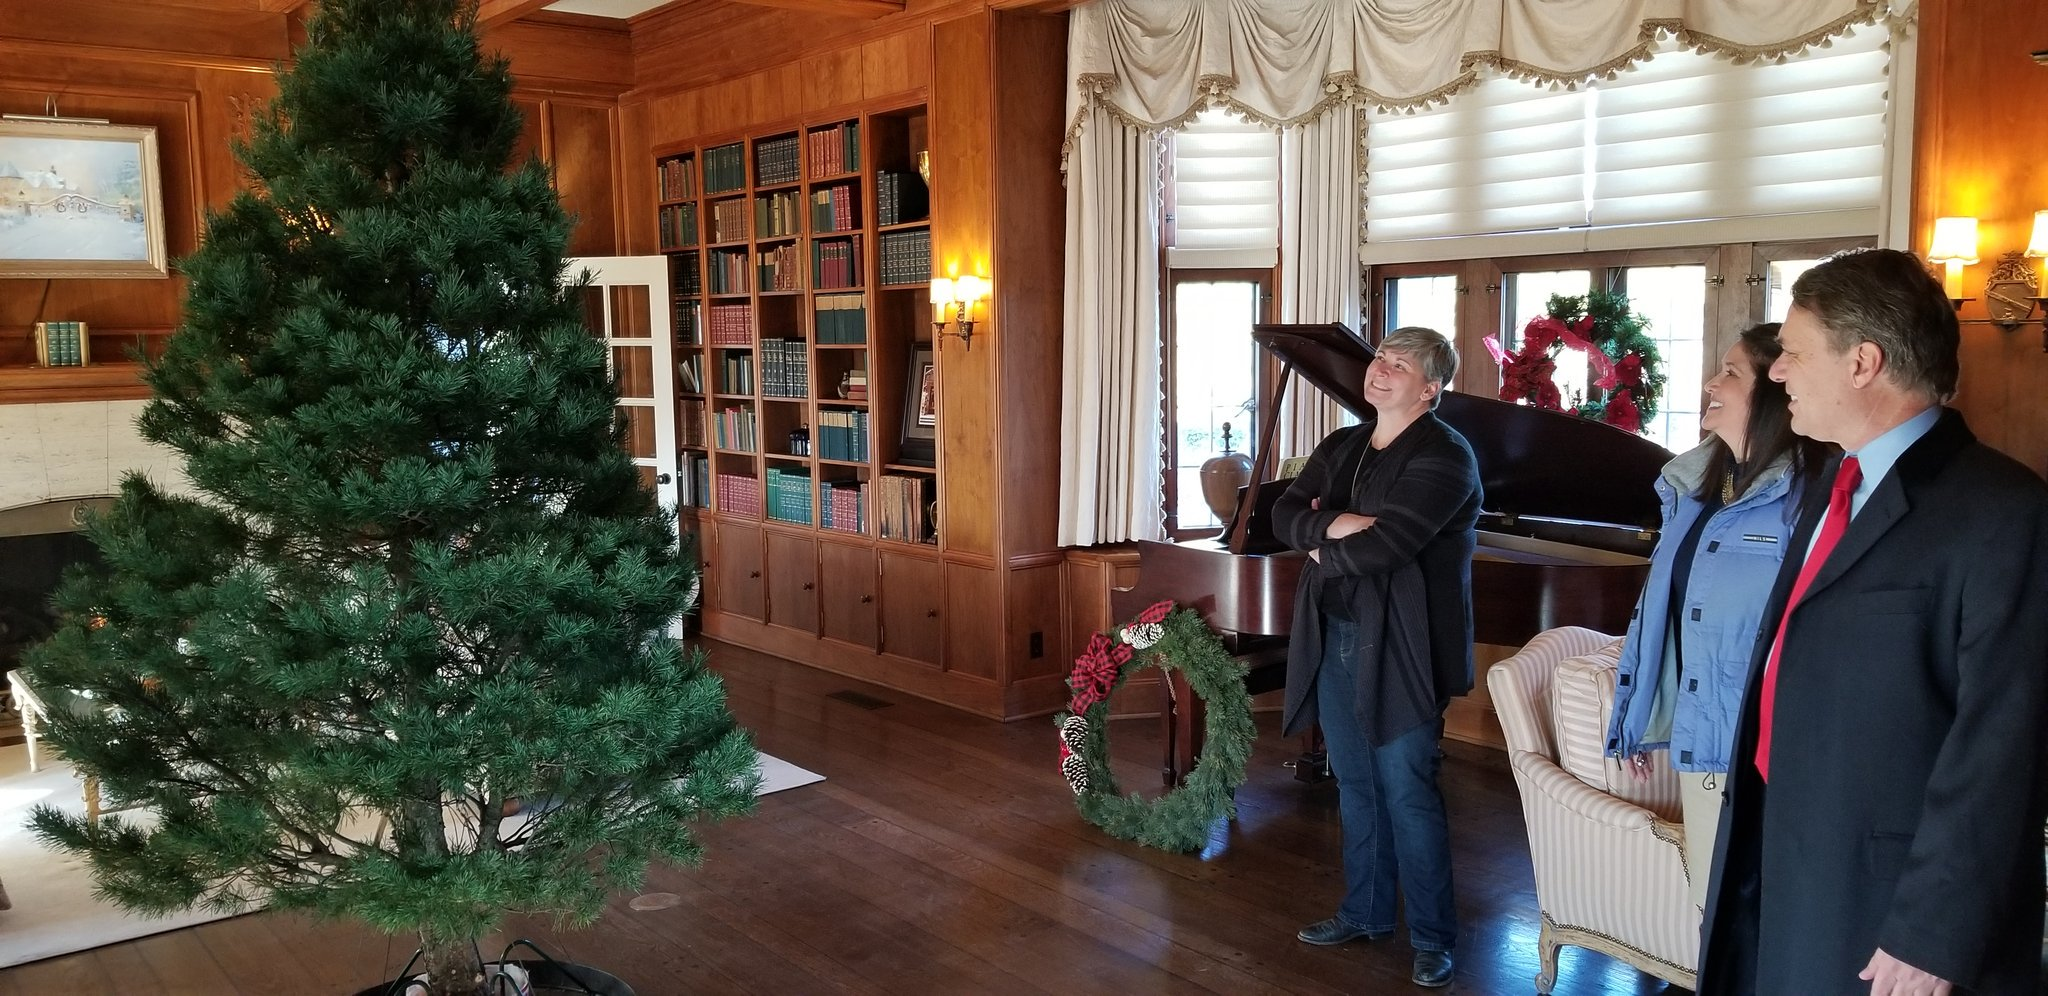 The 2018 Cedar Crest Christmas tree inside the governor's mansion. (Photo by Stephen Koranda)